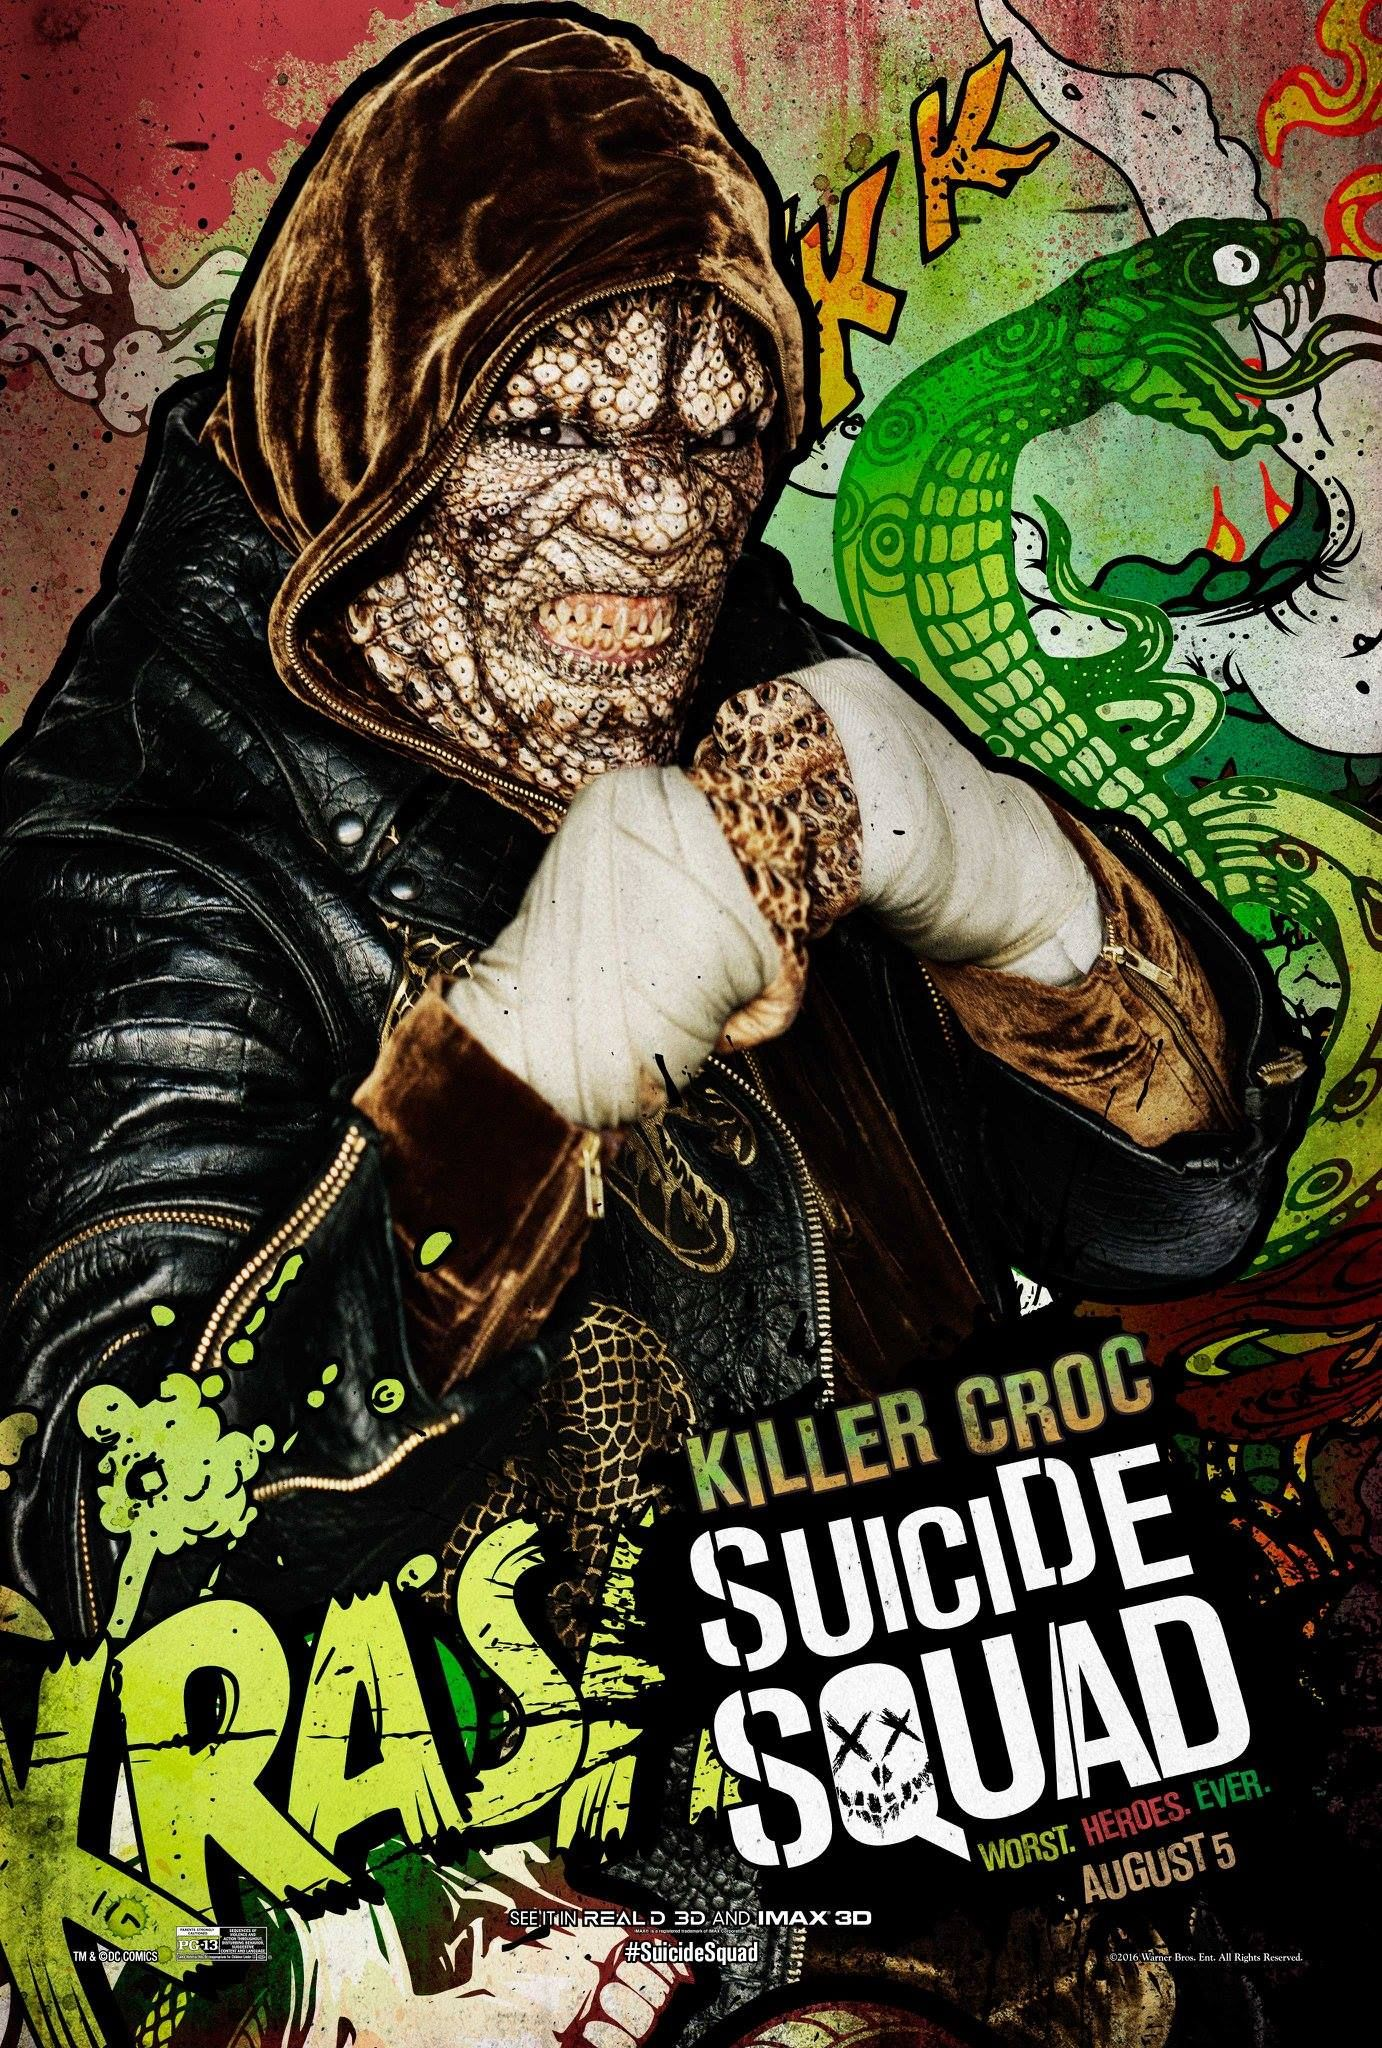 Suicide Squad: Killer Croc Explained by Adewale Akinnuoye